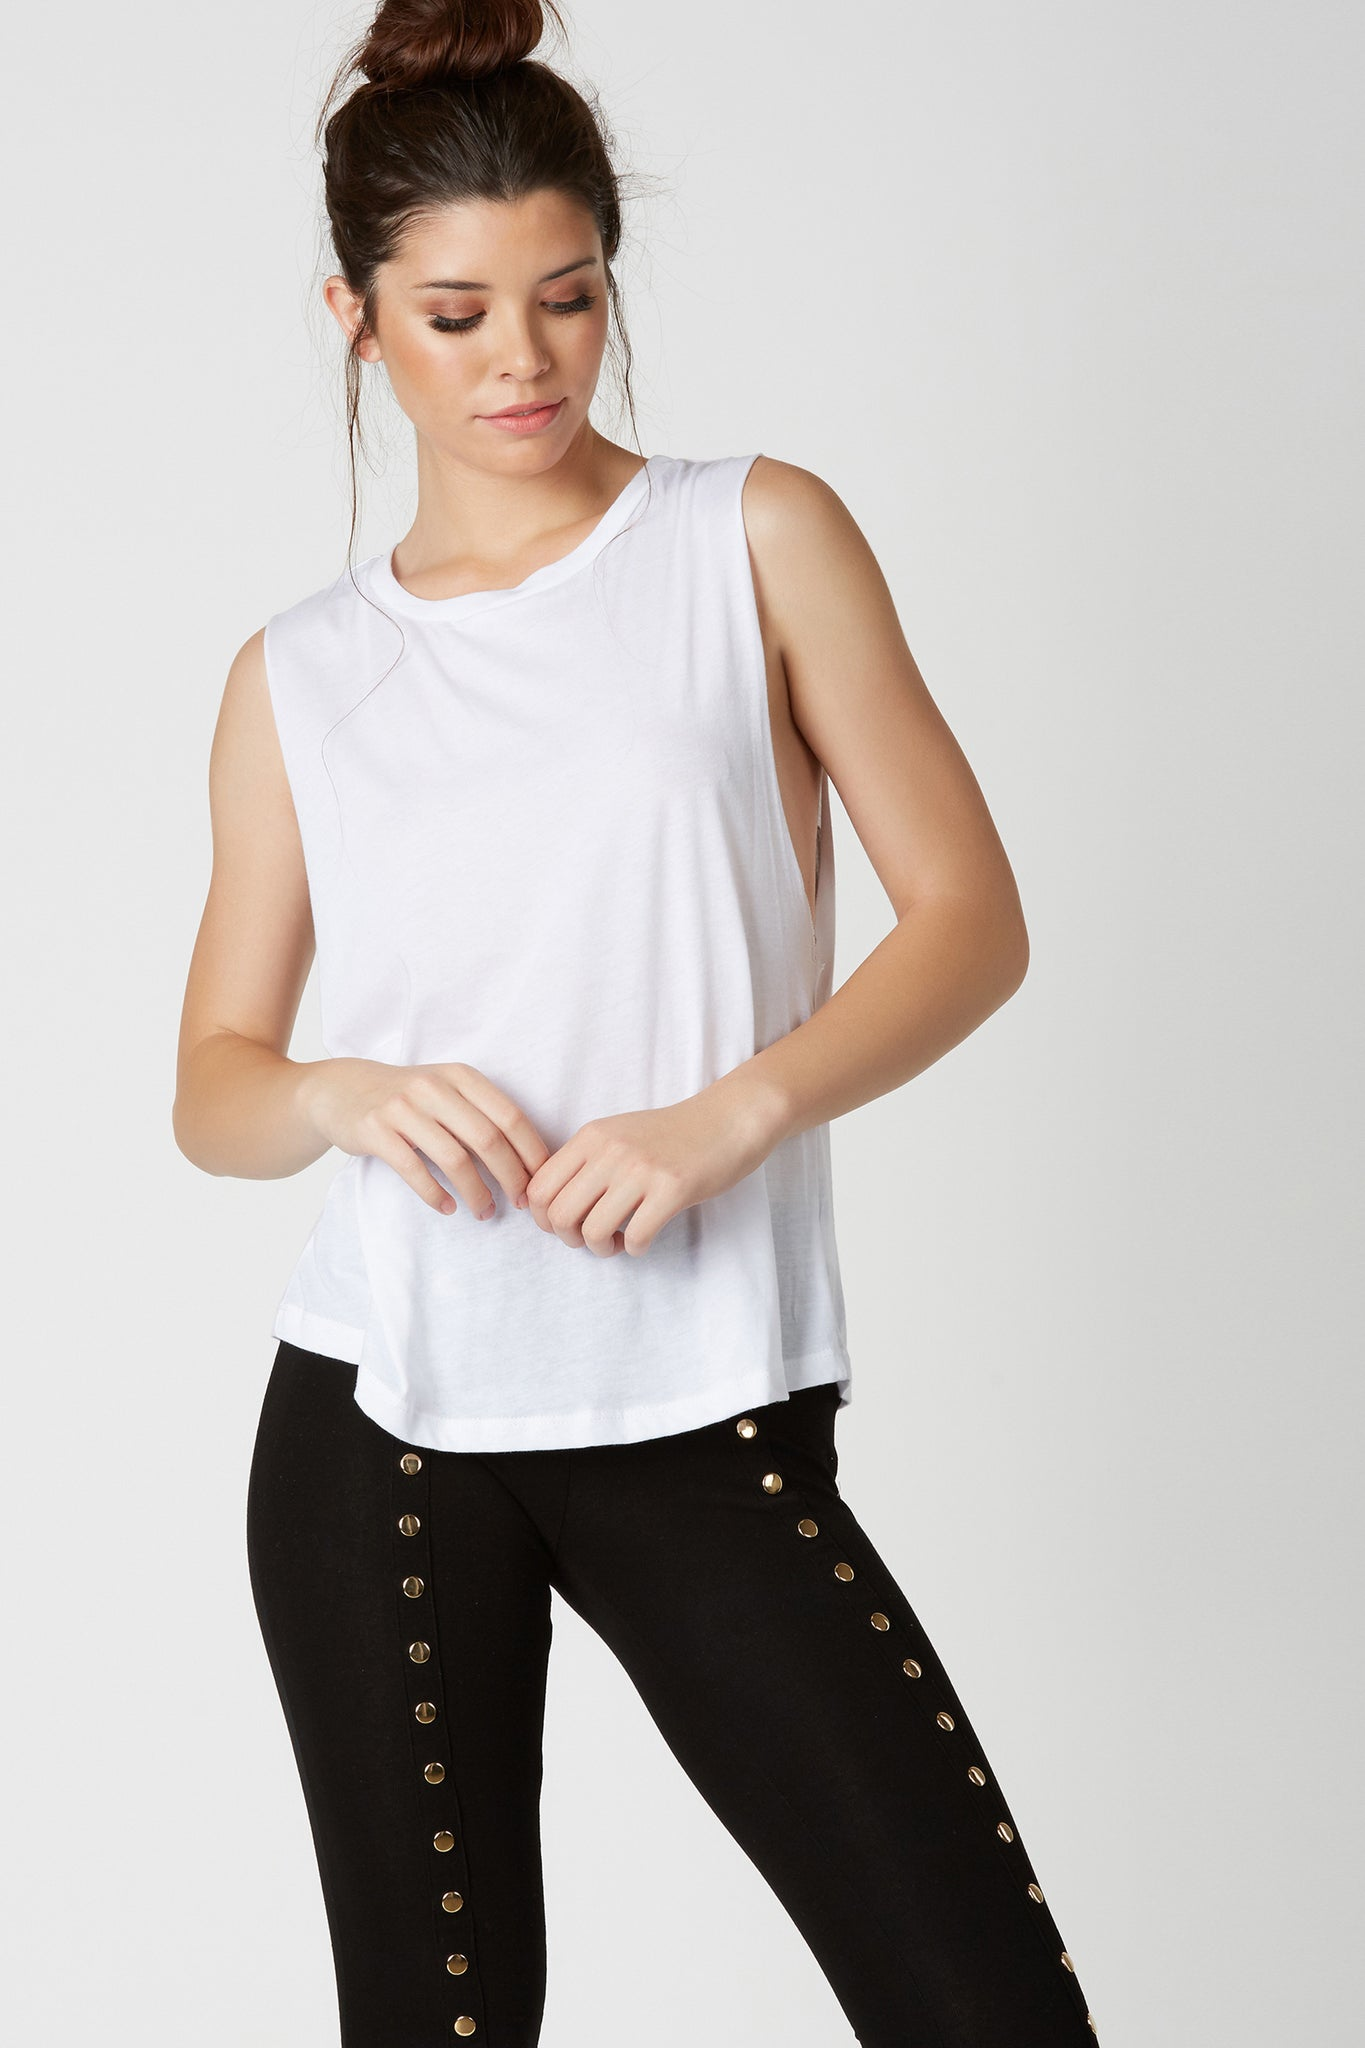 Soft basic muscle tank with relaxed fit and bold graphic in back. Rounded neckline and slightly curved hem finish.